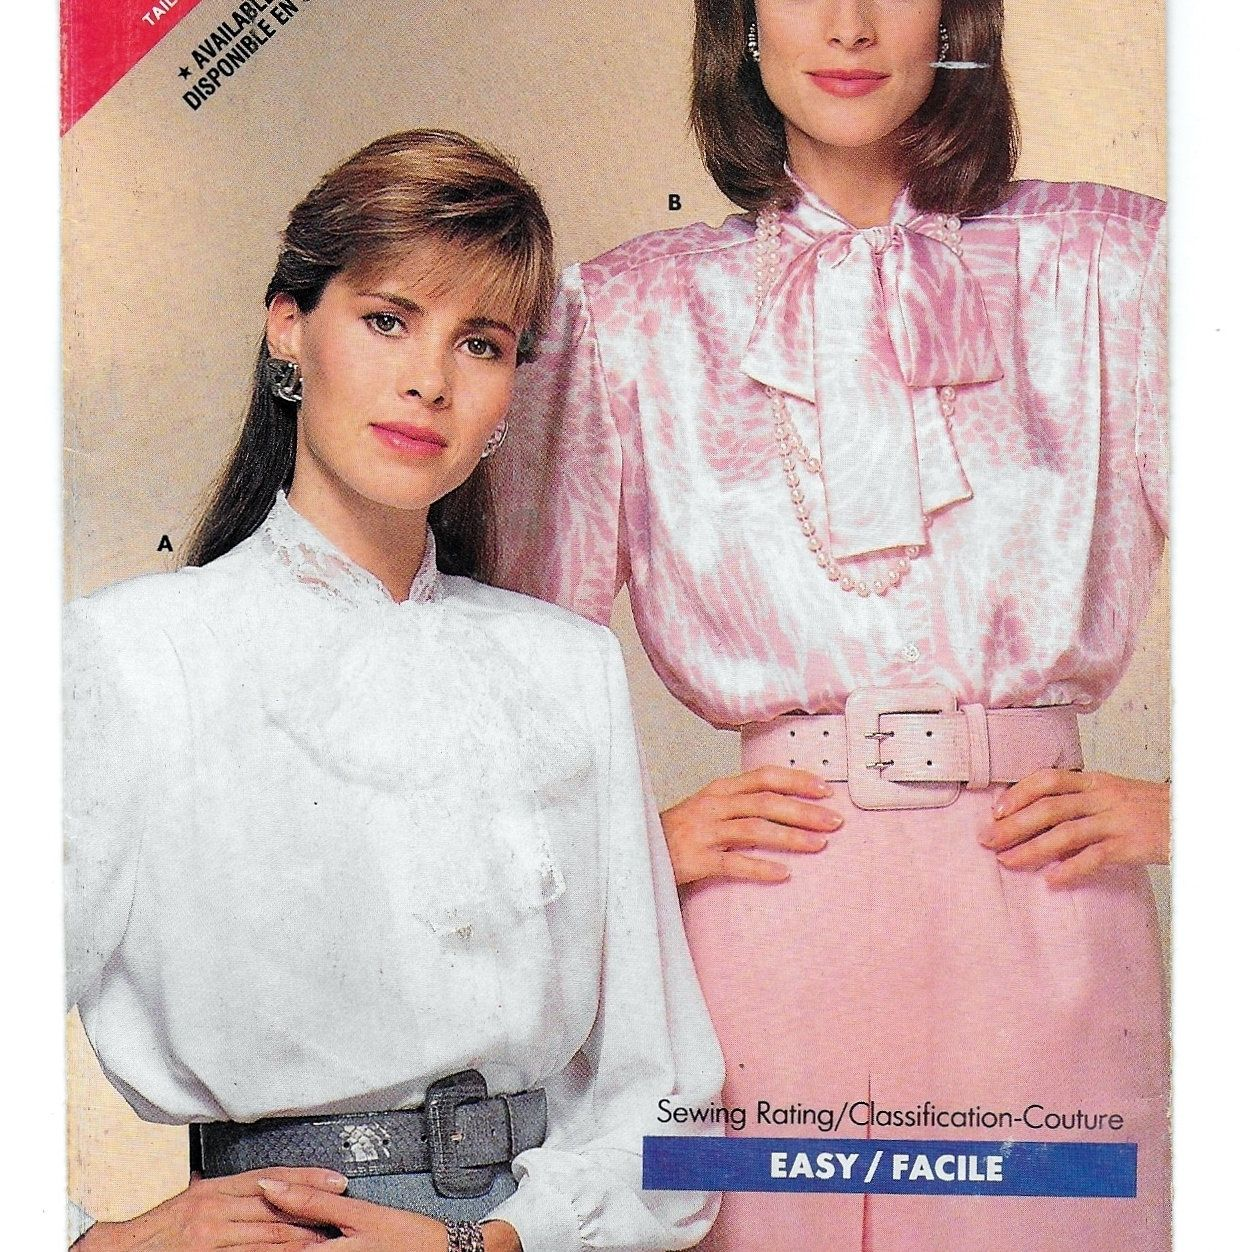 A Long Sleeve, Straight Hem Blouse w/Tie Collar Sewing Pattern for Women: Uncut